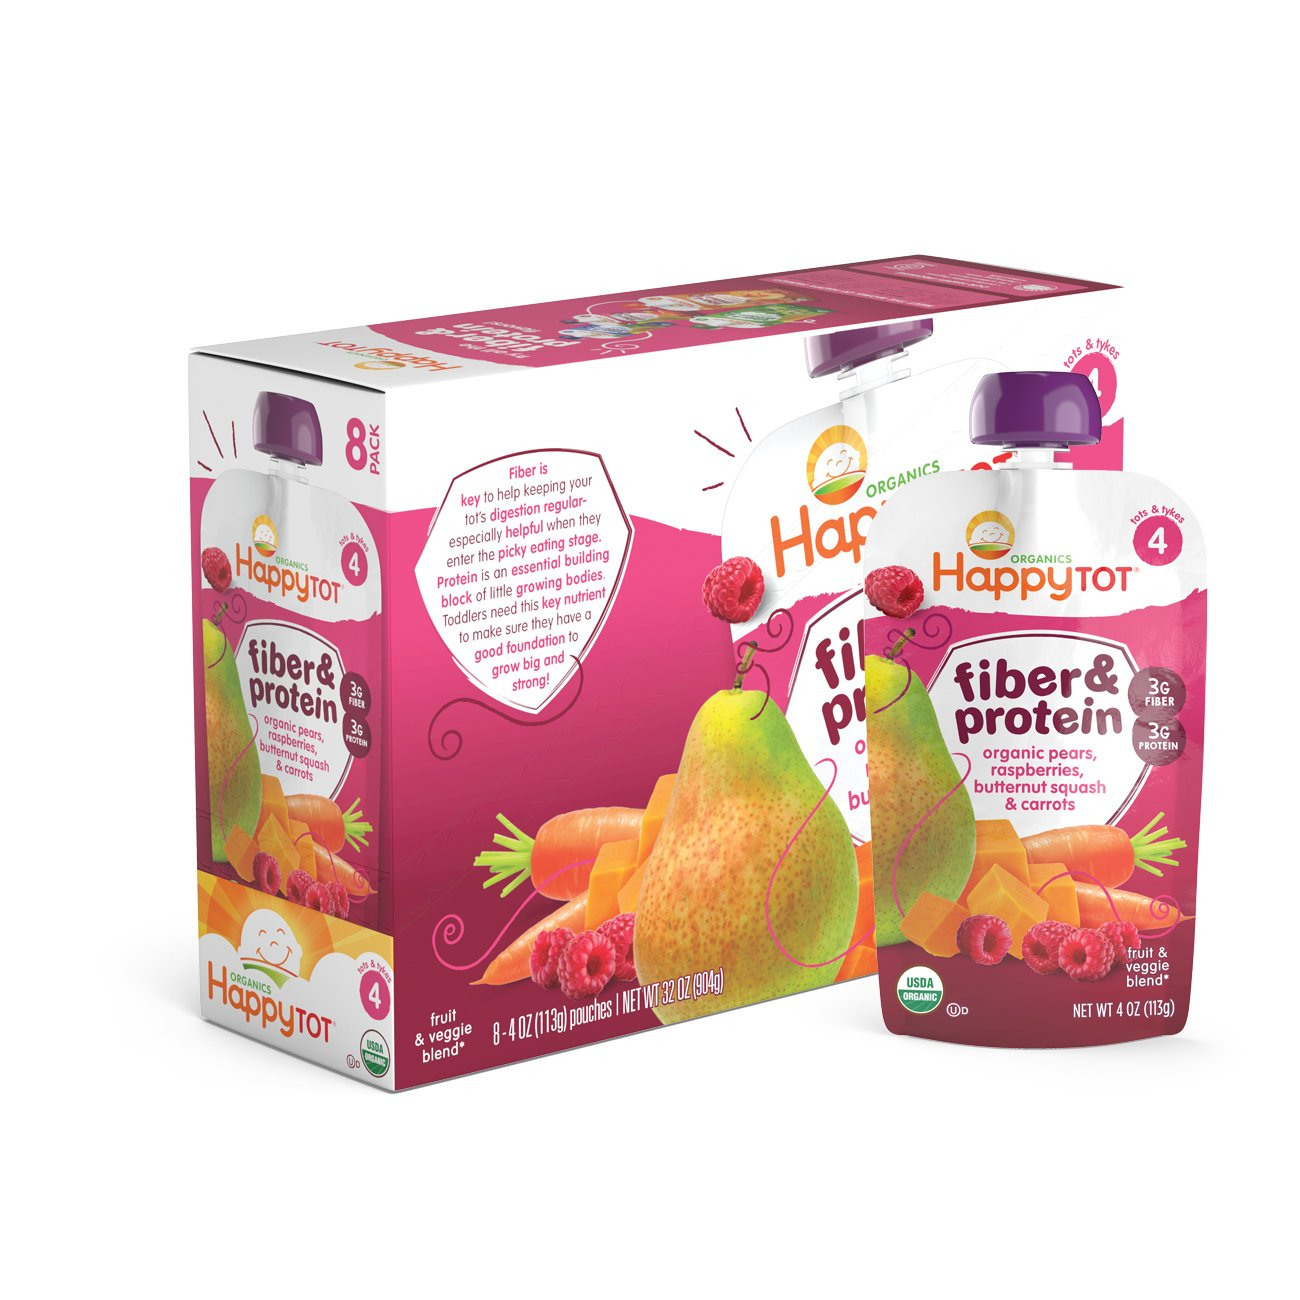 Happy Tot Organic Stage 4 Fiber & Protein, Pears, Raspberries, Butternut Squash & Carrots, 4 Ounce (Pack of 8)